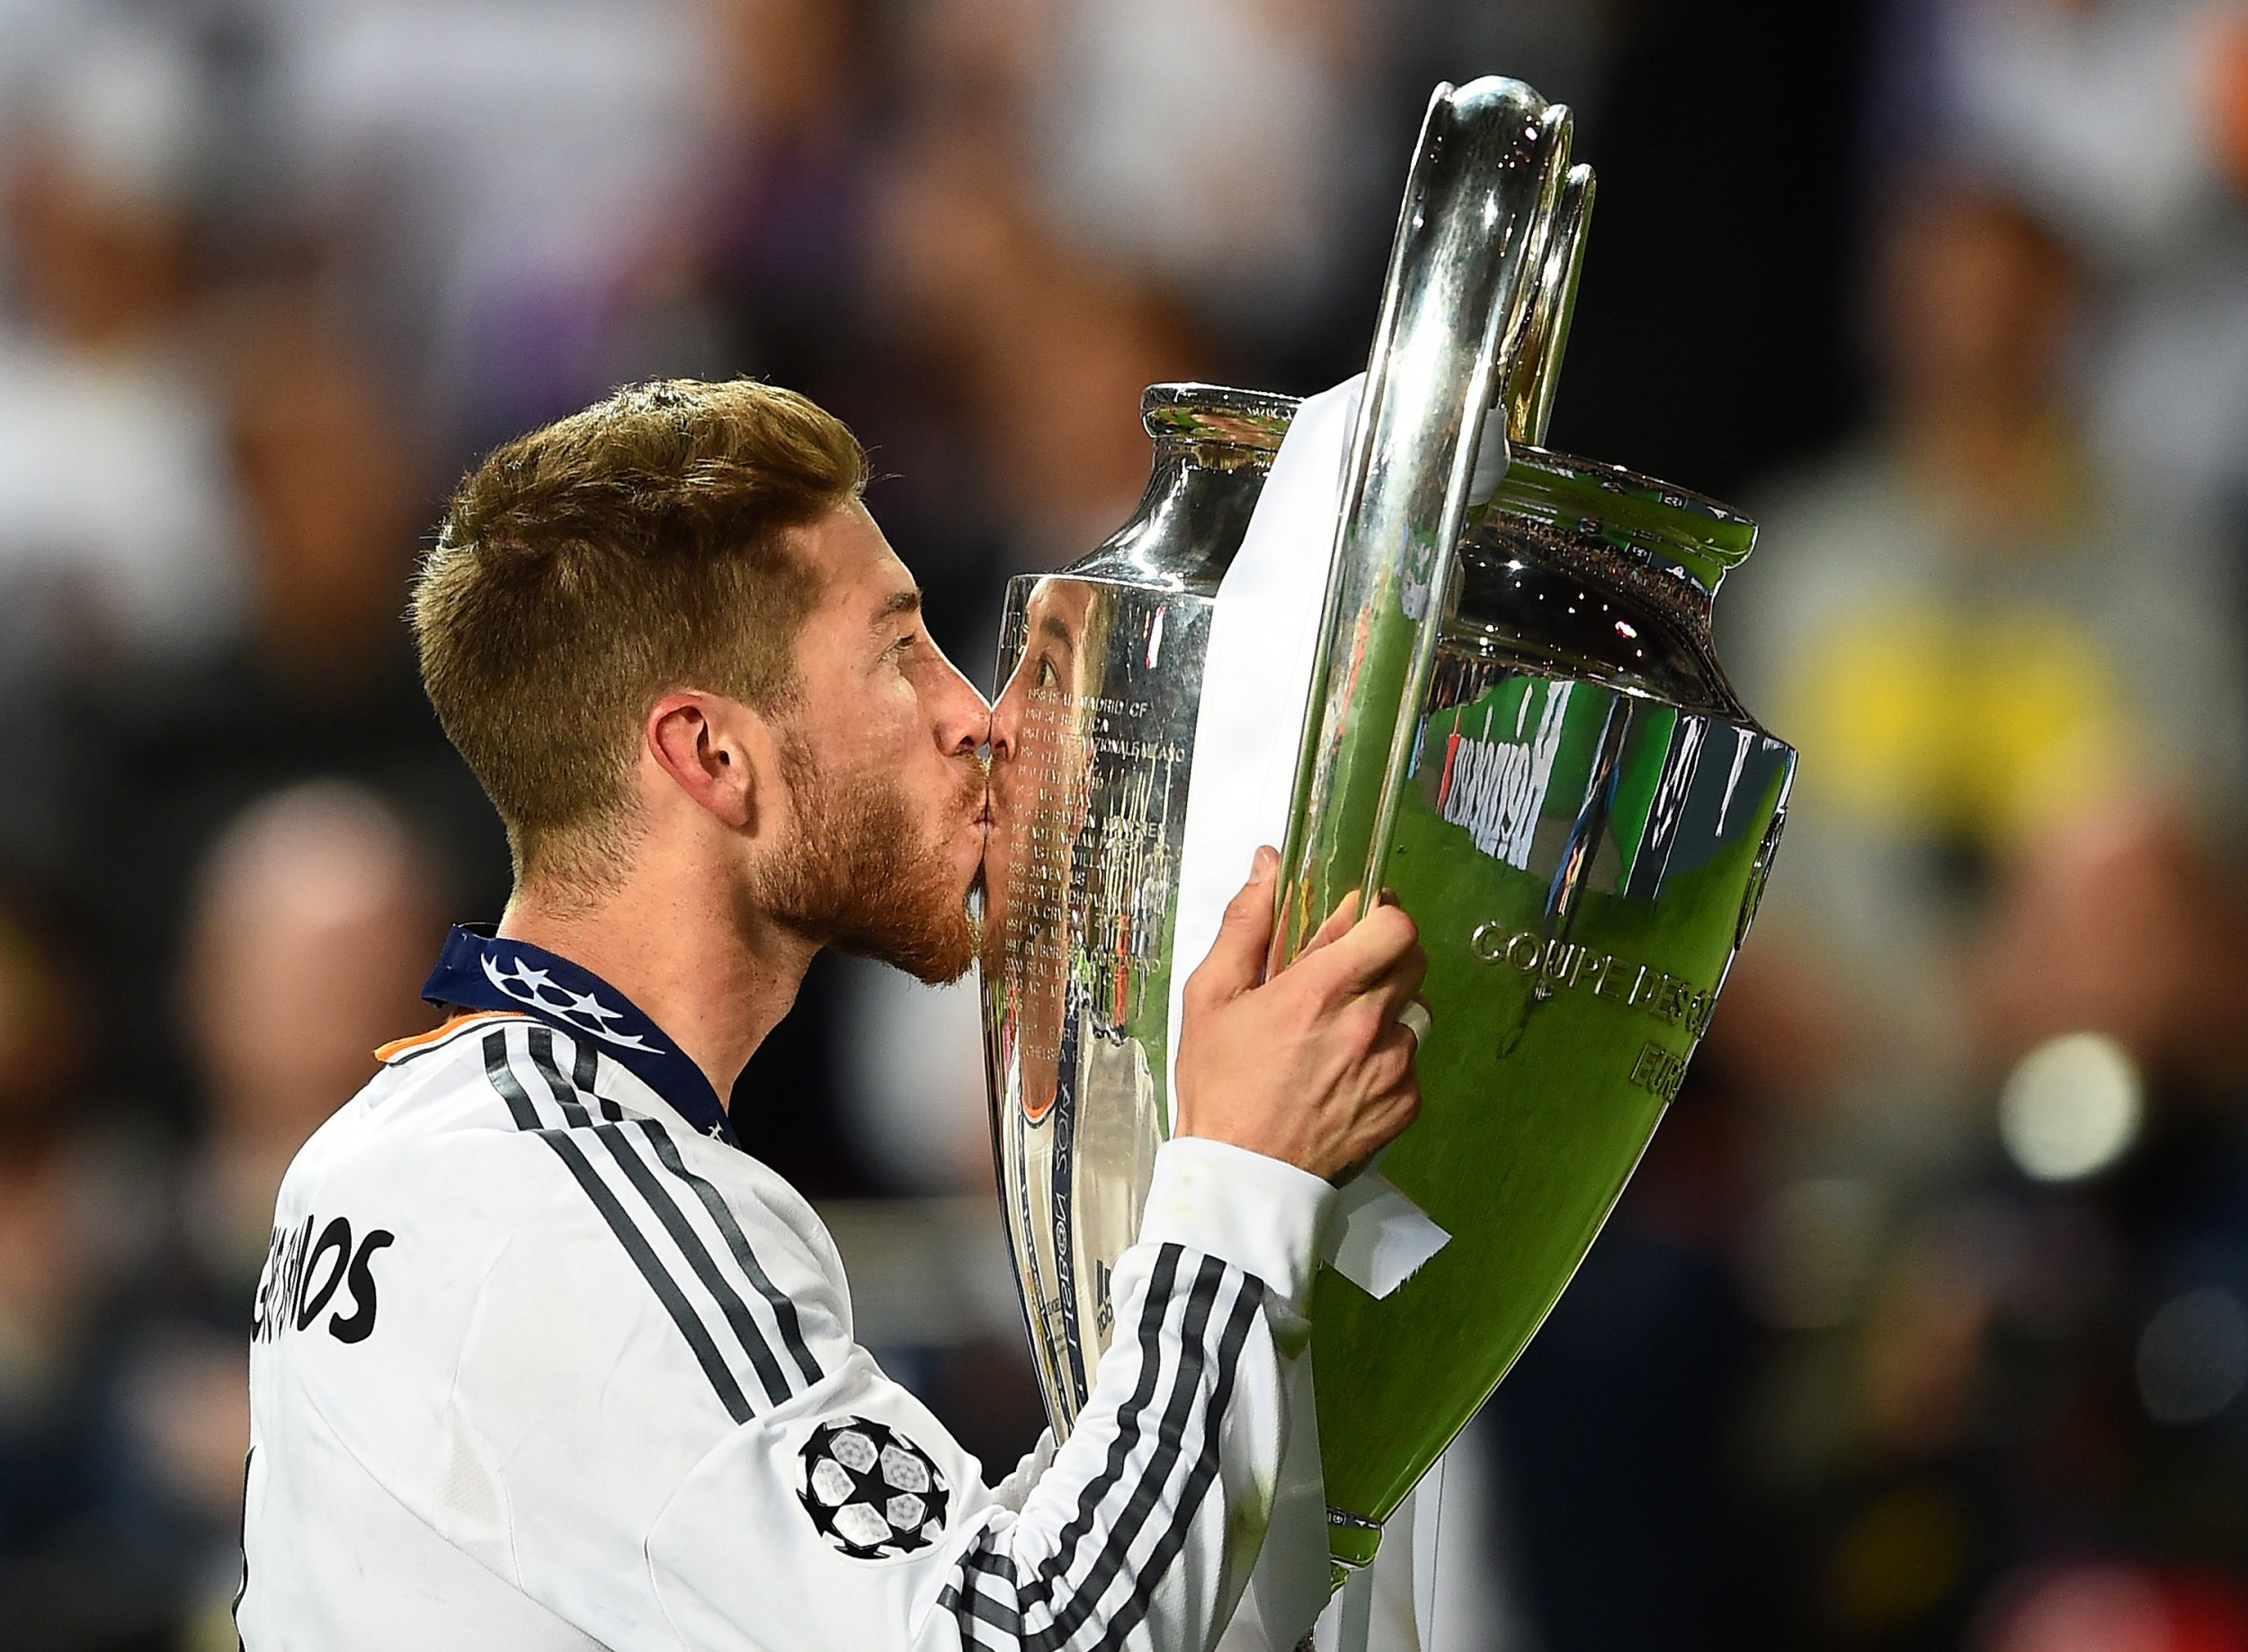 Ramos winning champions league for real madrid like - Sergio madrid ...